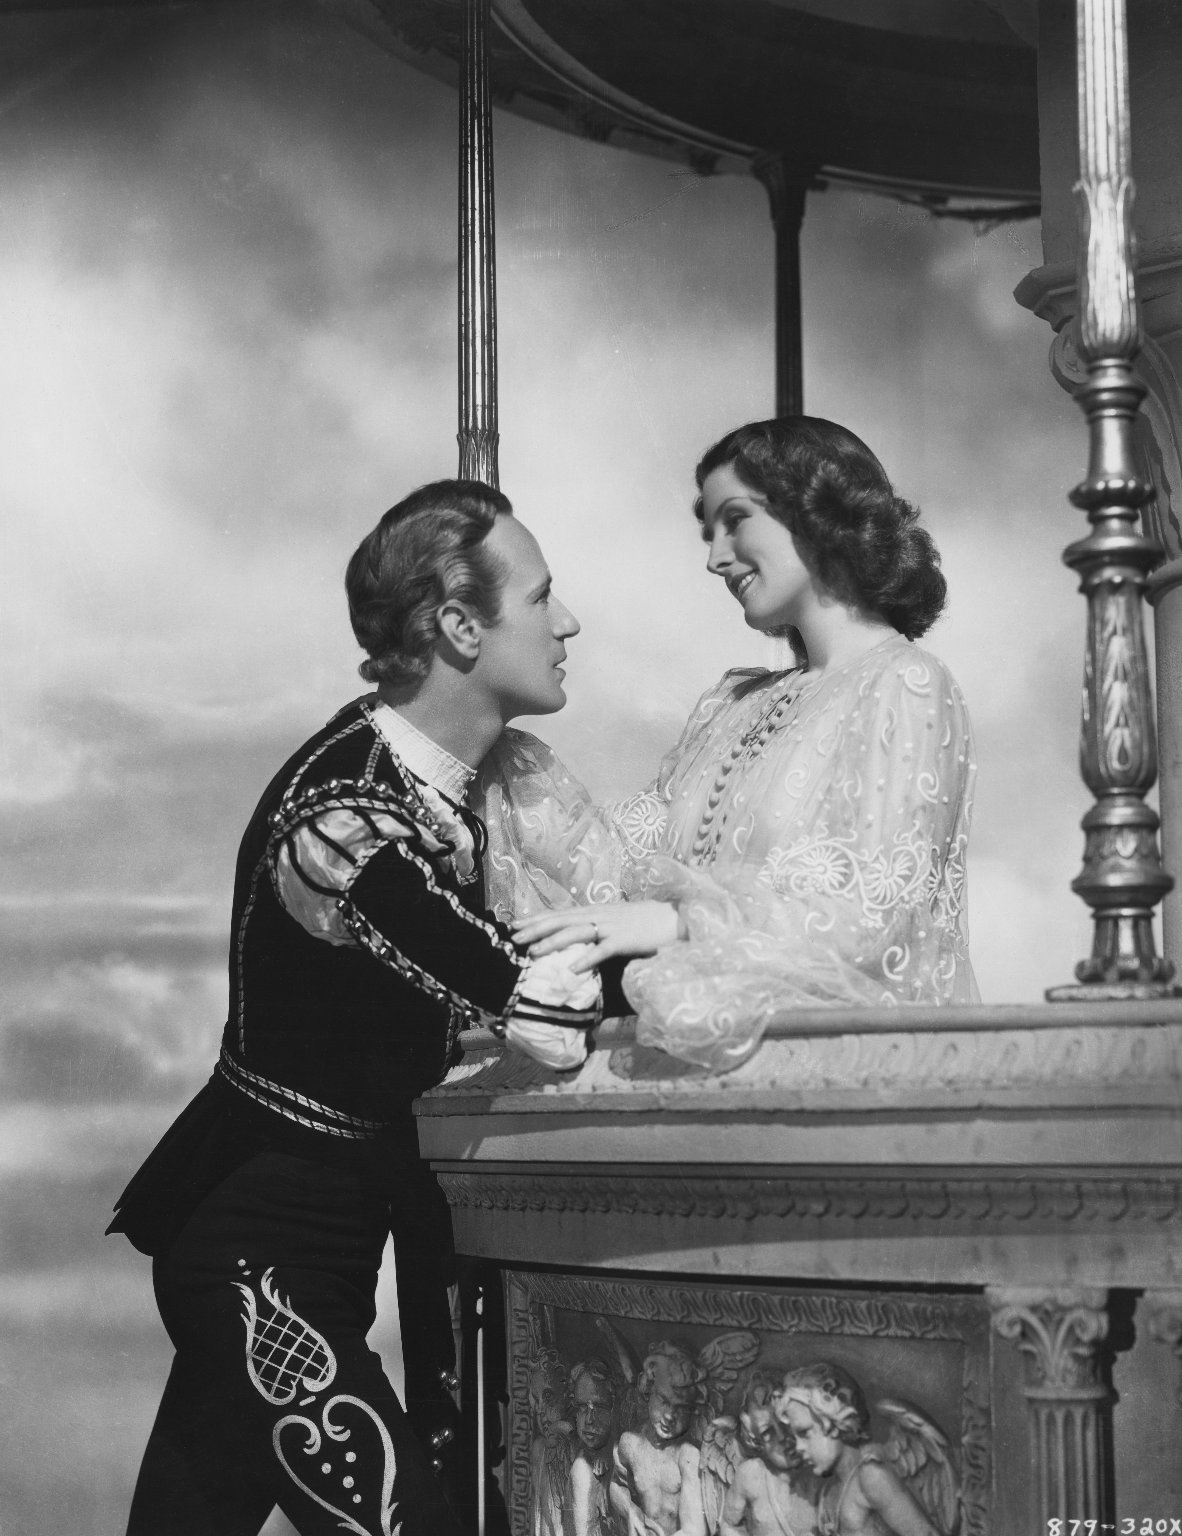 the greatest productions of romeo and juliet of all time romeo and juliet 1936 mgm film © mgm wikicommons